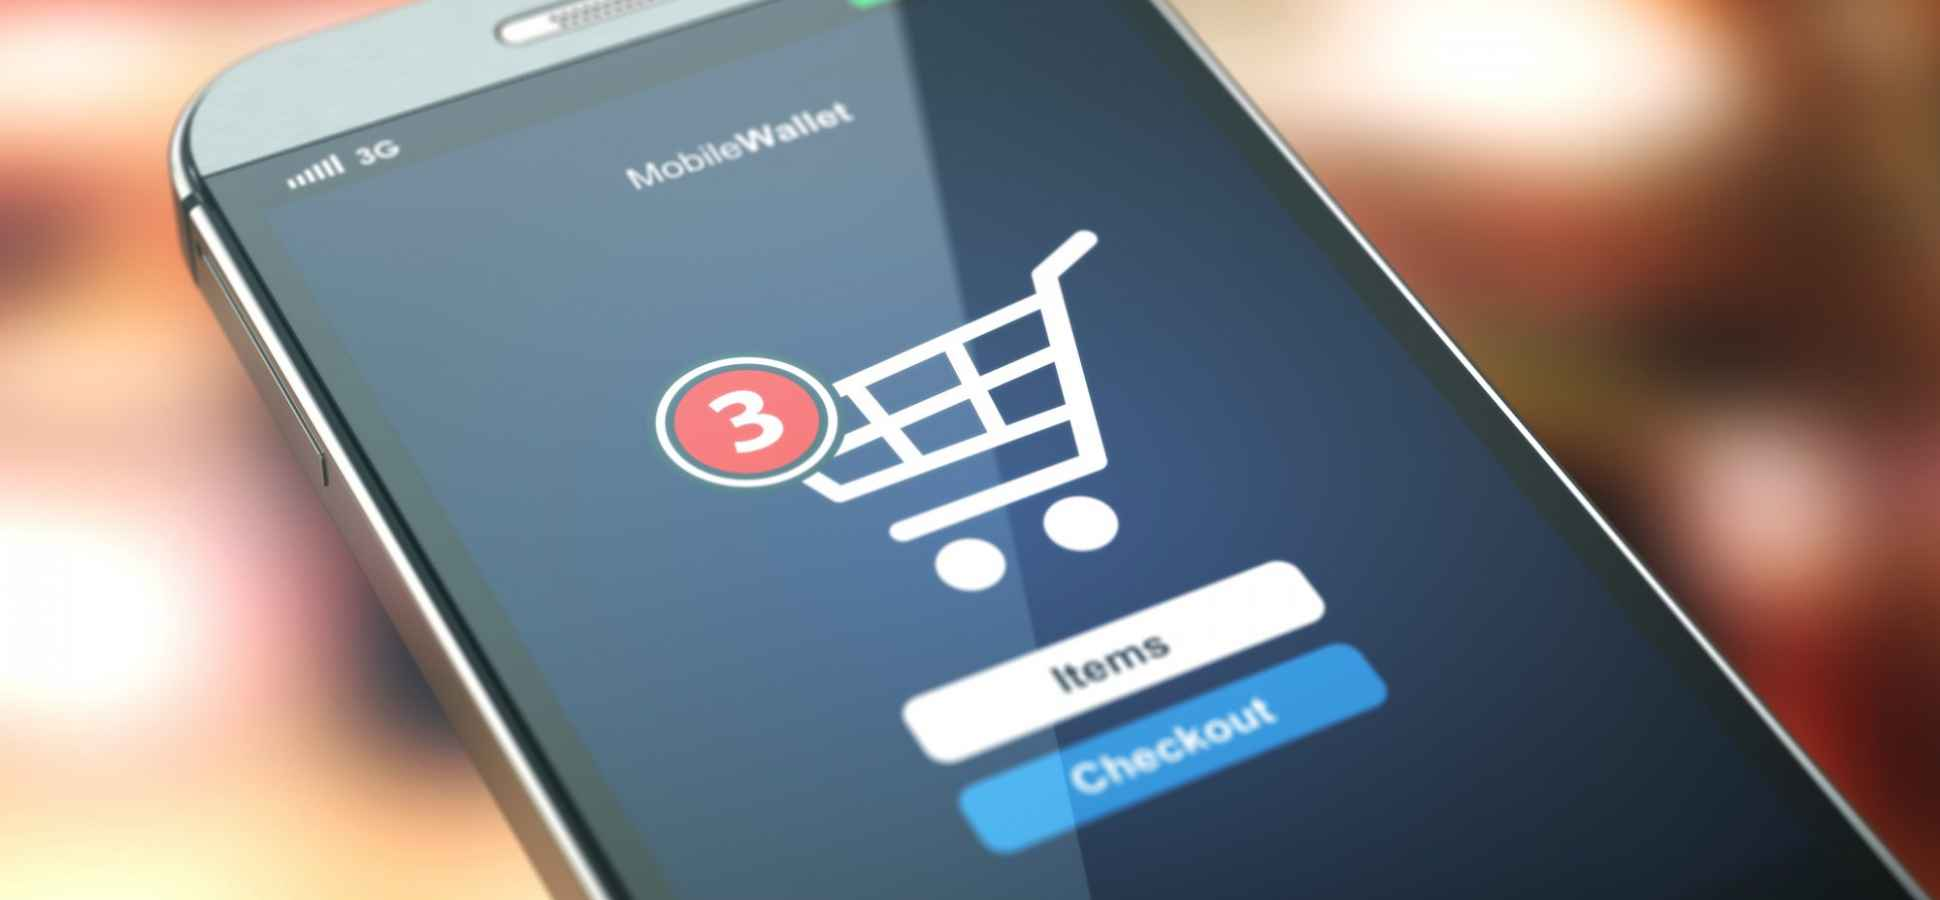 Mobile devices influence shopping habits,